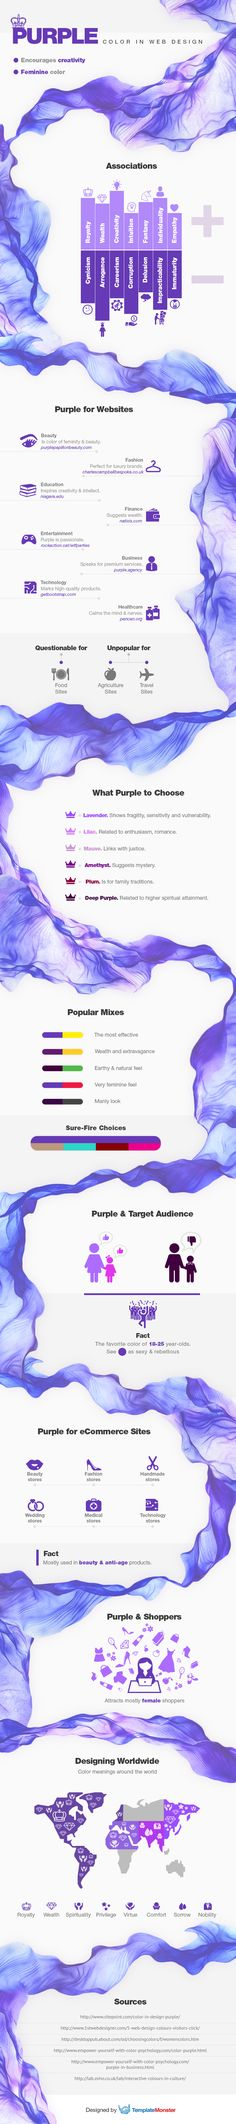 Discover the genuine power of Purple Color in Web Design, learn tips of its effective usage, and feel its  creative vibration.